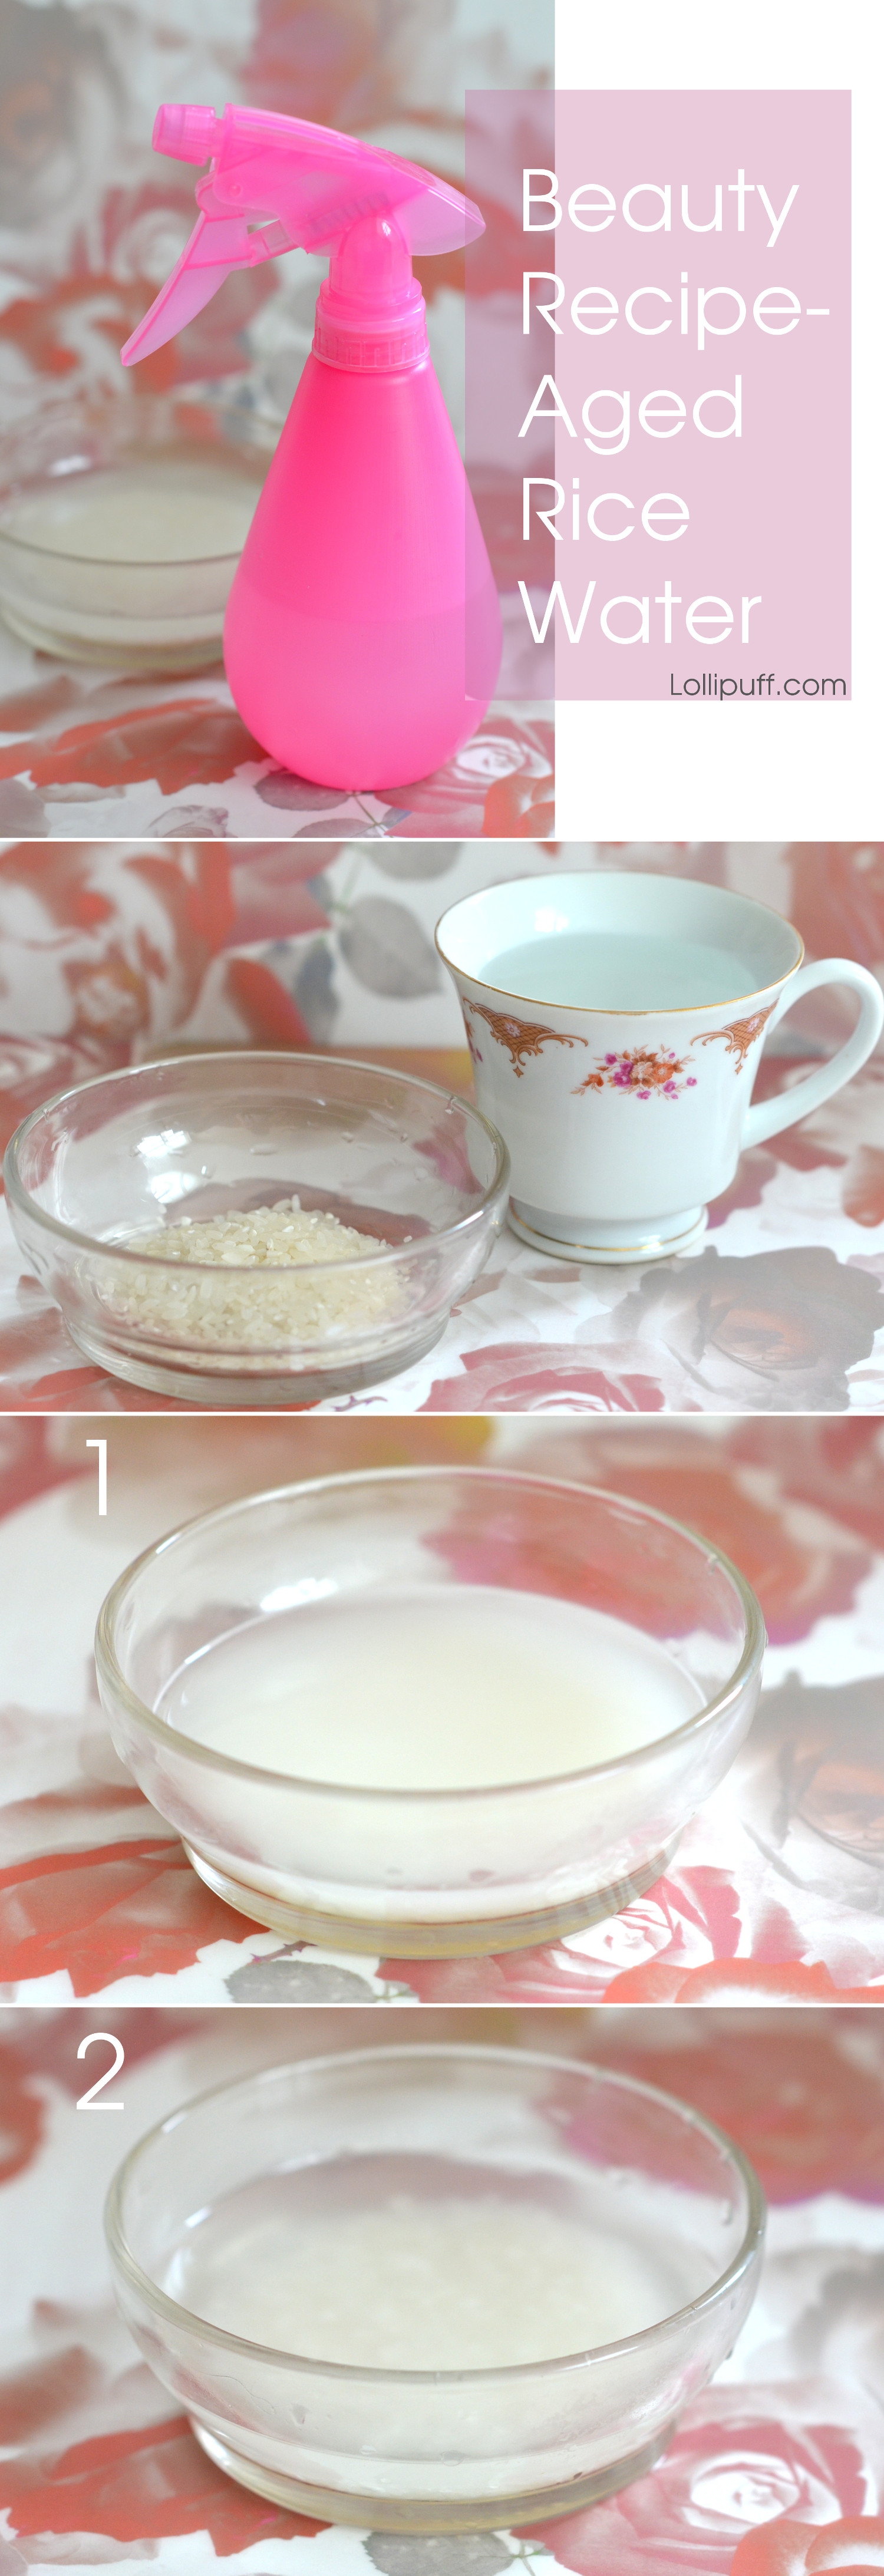 How to make rice water for hair recipe